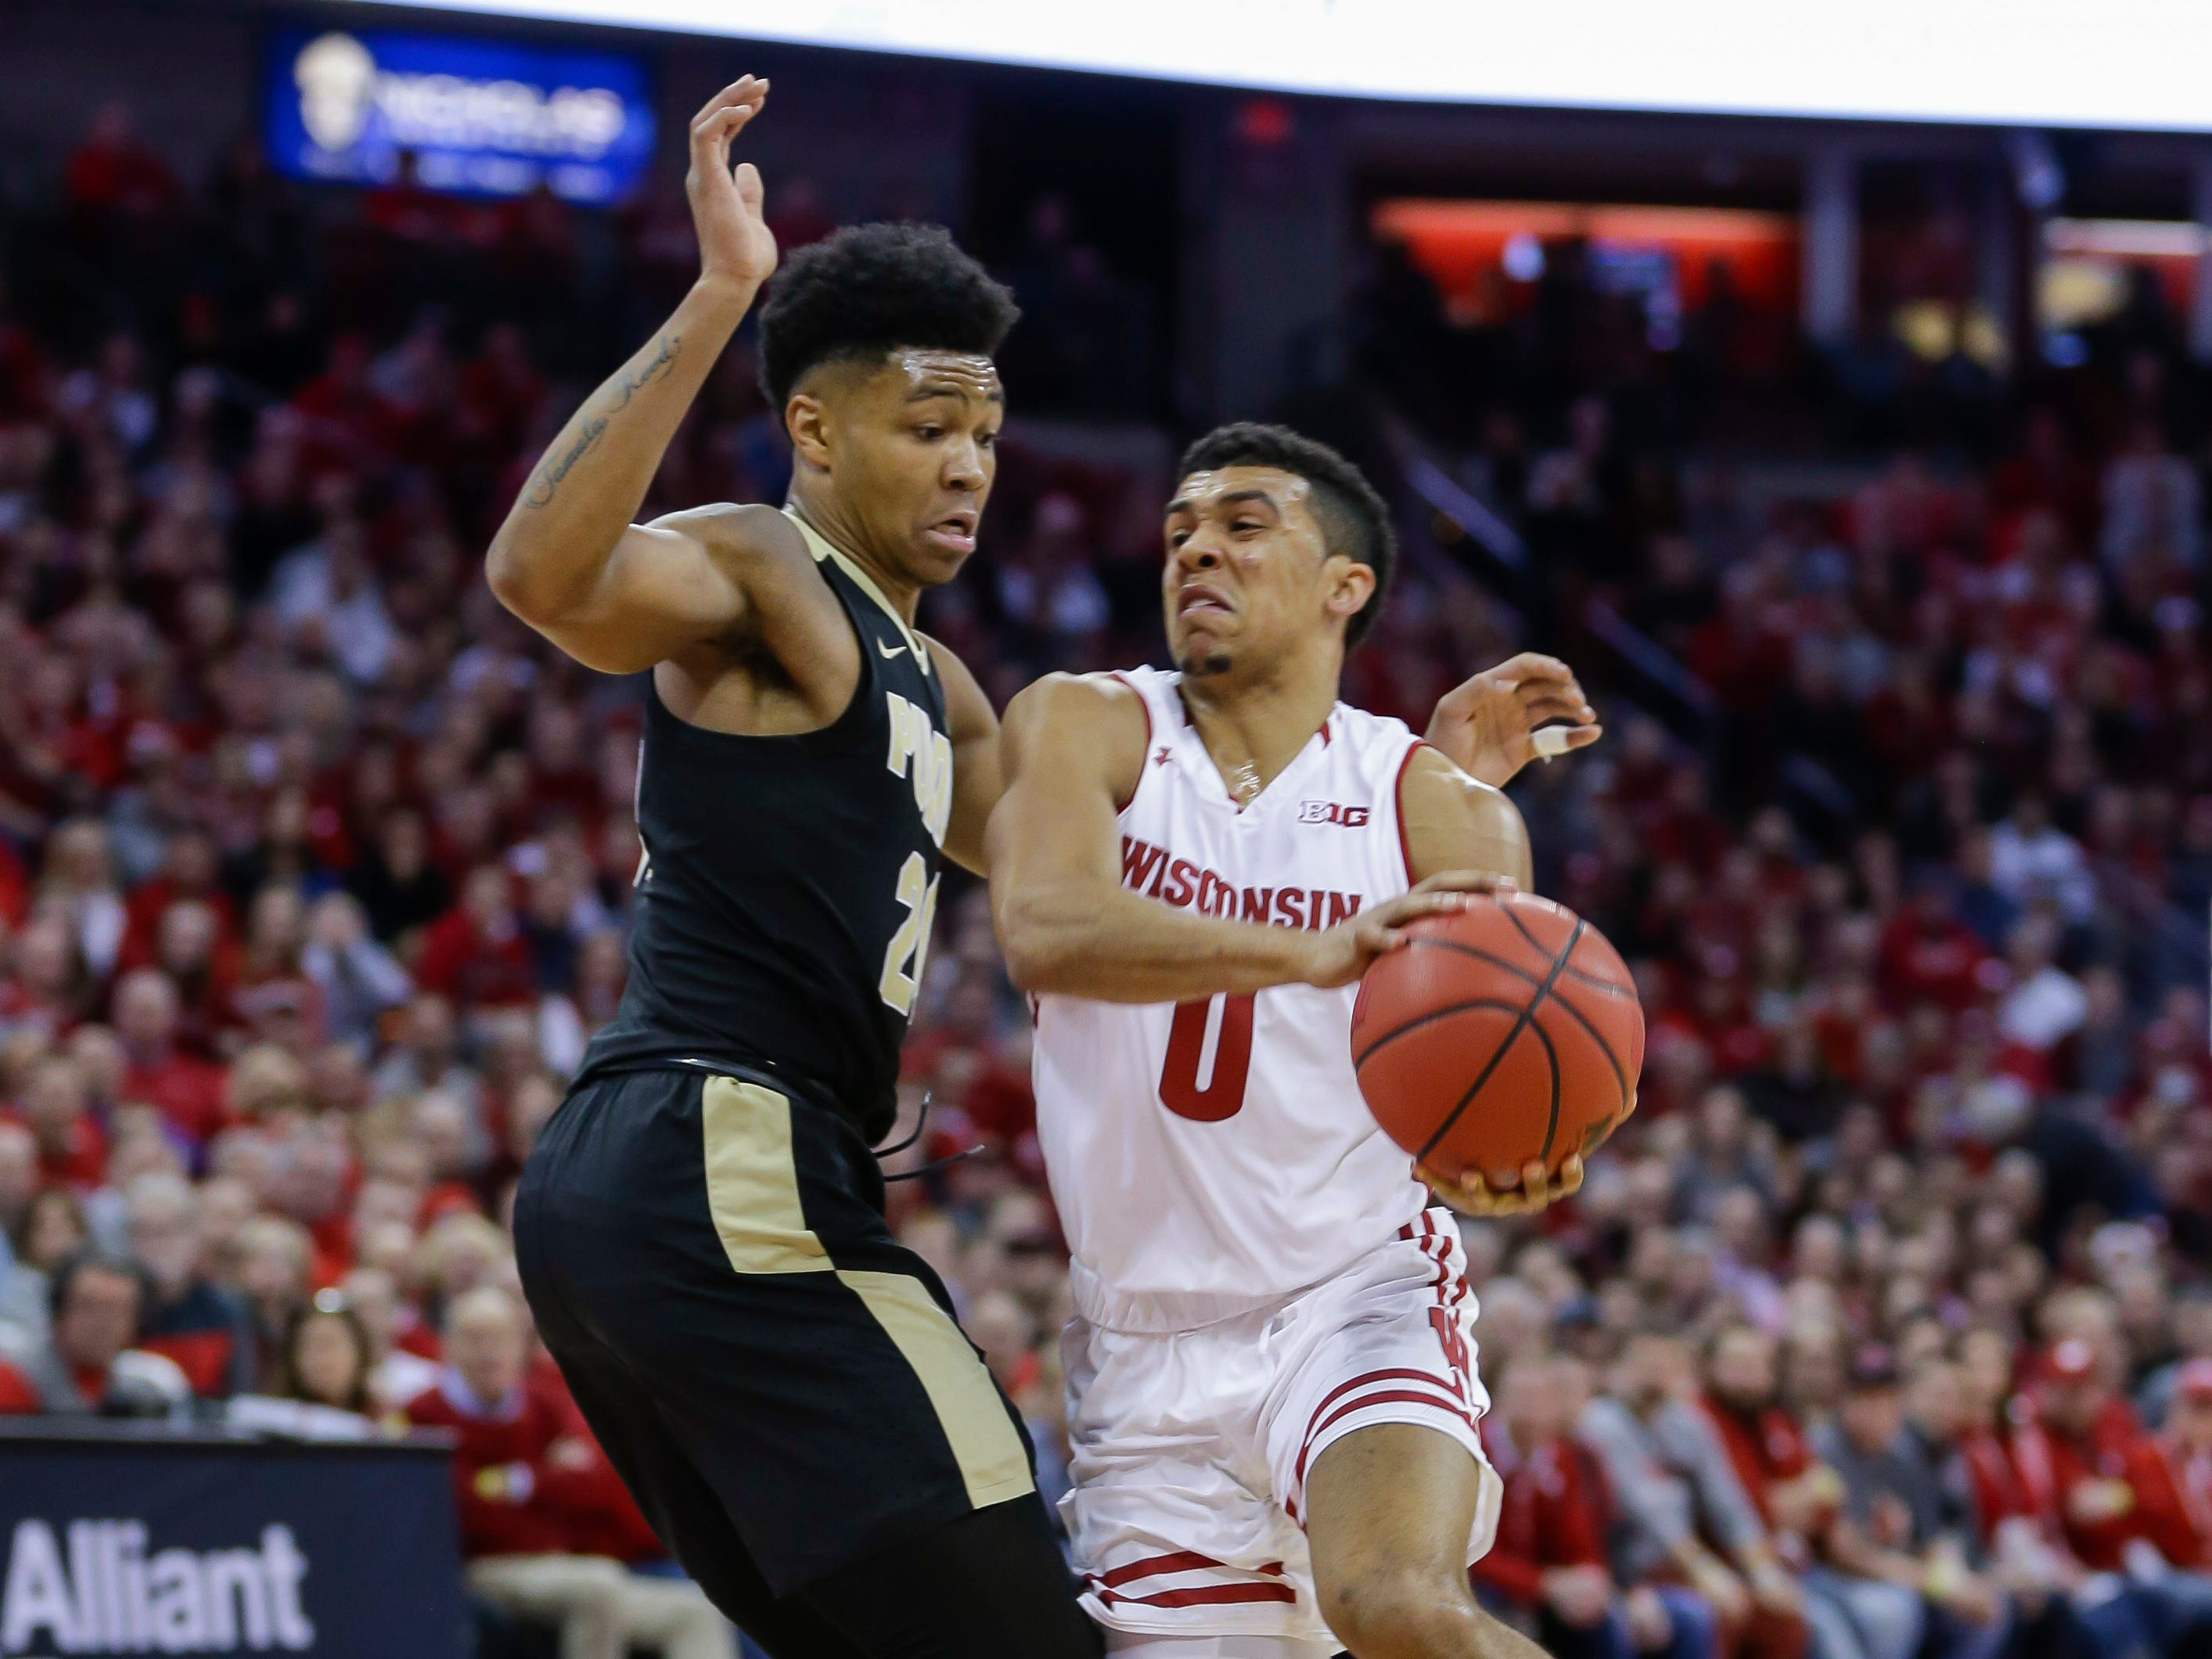 Wisconsin's D'Mitrik Trice drives on Purdue's Nojel Eastern during the second half Friday.